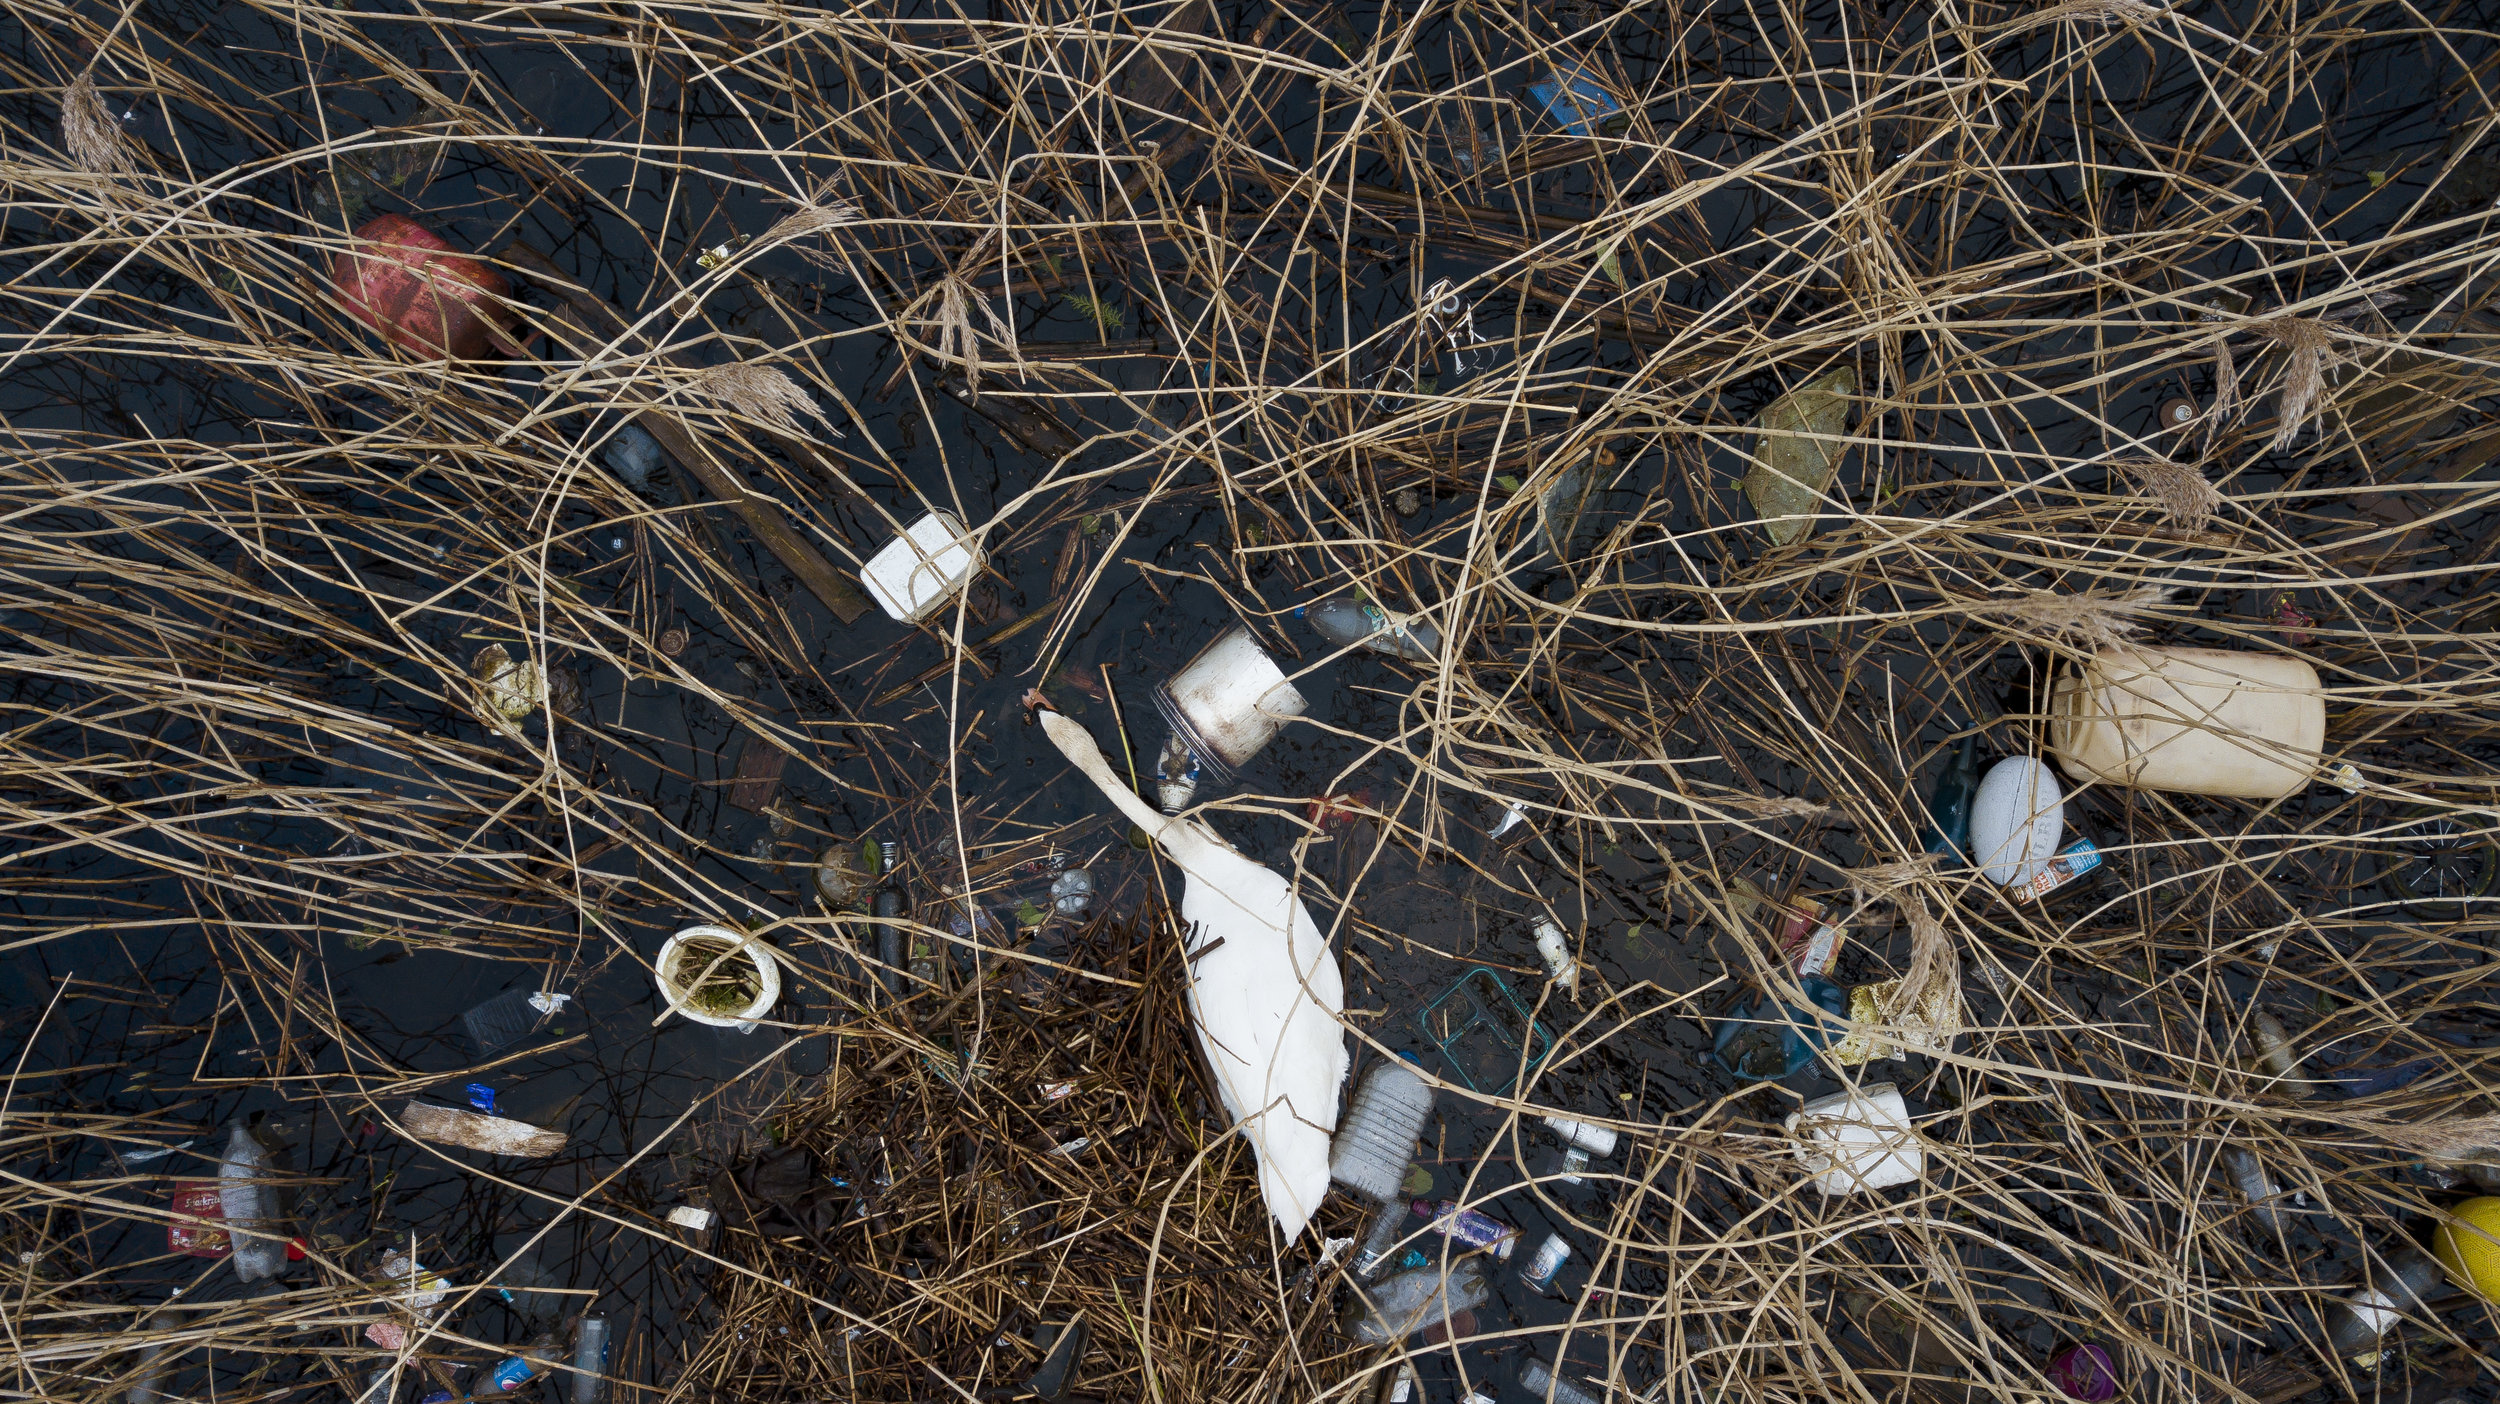 A swan surrounded by litter in the River Taff in Cardiff, Wales.